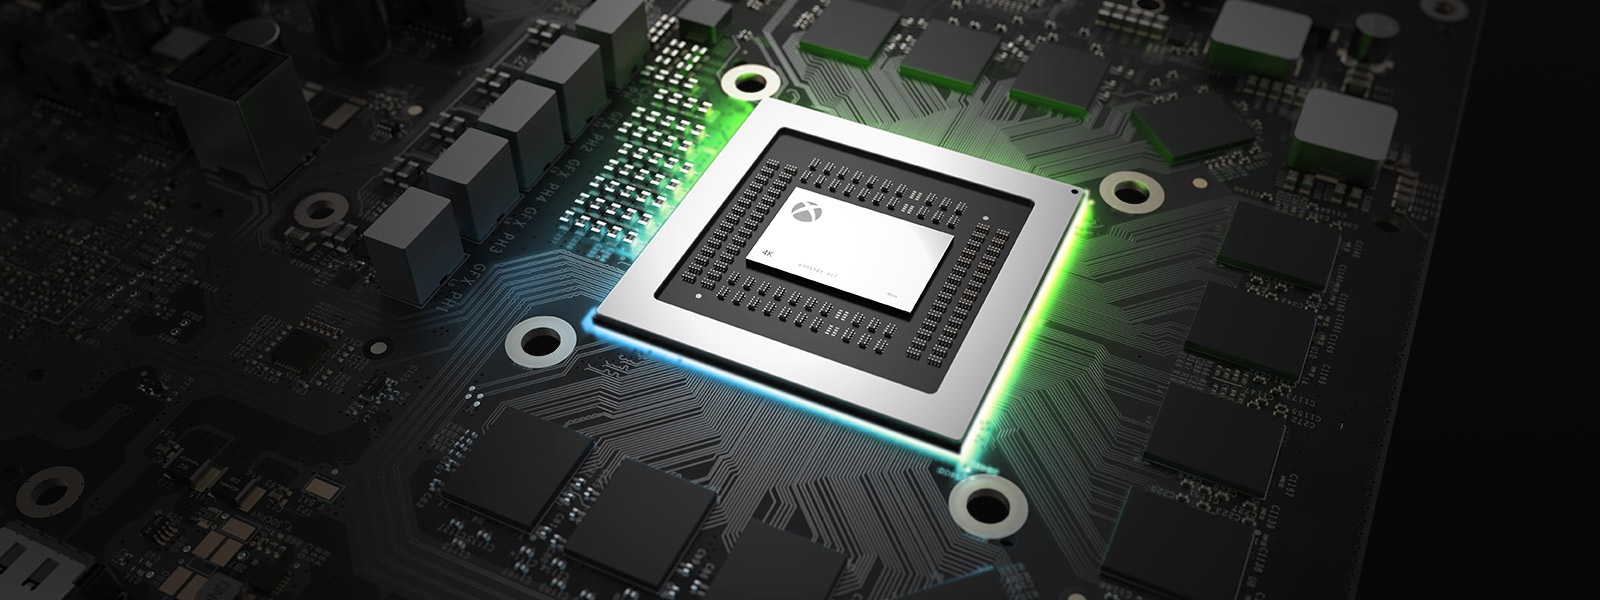 Scorpio Engine With 6 Teraflops, 326GB/s of Memory Bandwidth